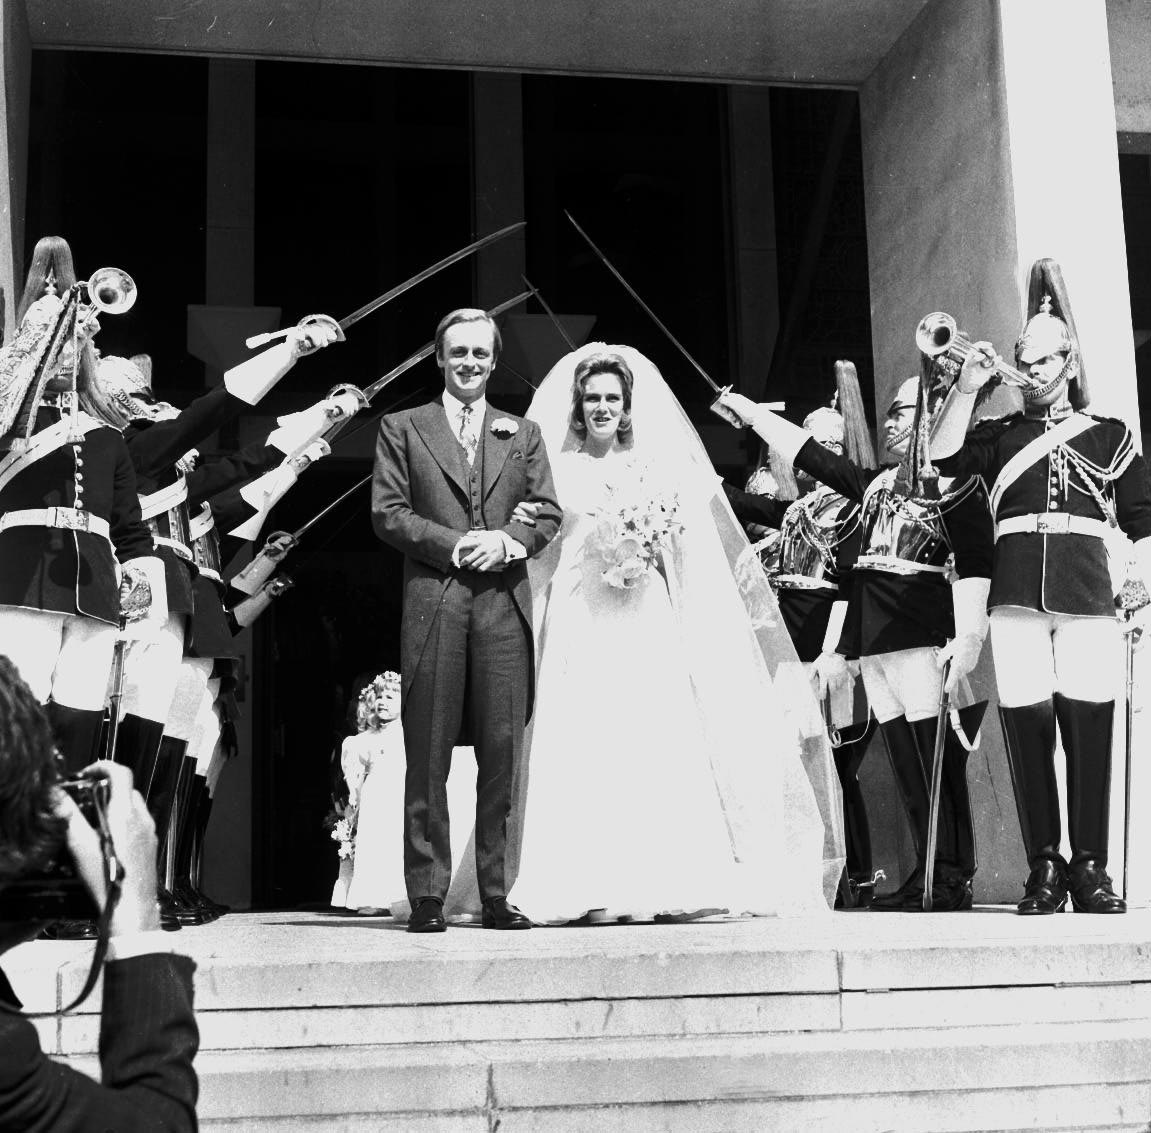 File photo relating to the recent story that Prince Harry is to Join The Blues And Royals.  Major ANDREW PARKER-BOWLES (of the Blues and Royals) With his wife CAMILLA (nee SHAND) (Outside the Guards' Chapel Wellington Barracks, after their marriage),Image: 17707023, License: Rights-managed, Restrictions: For queries call UPPA + 44 (0)20 7421 6000, Model Release: yes, Credit line: UPPA/Photoshot / Avalon Editorial / Profimedia